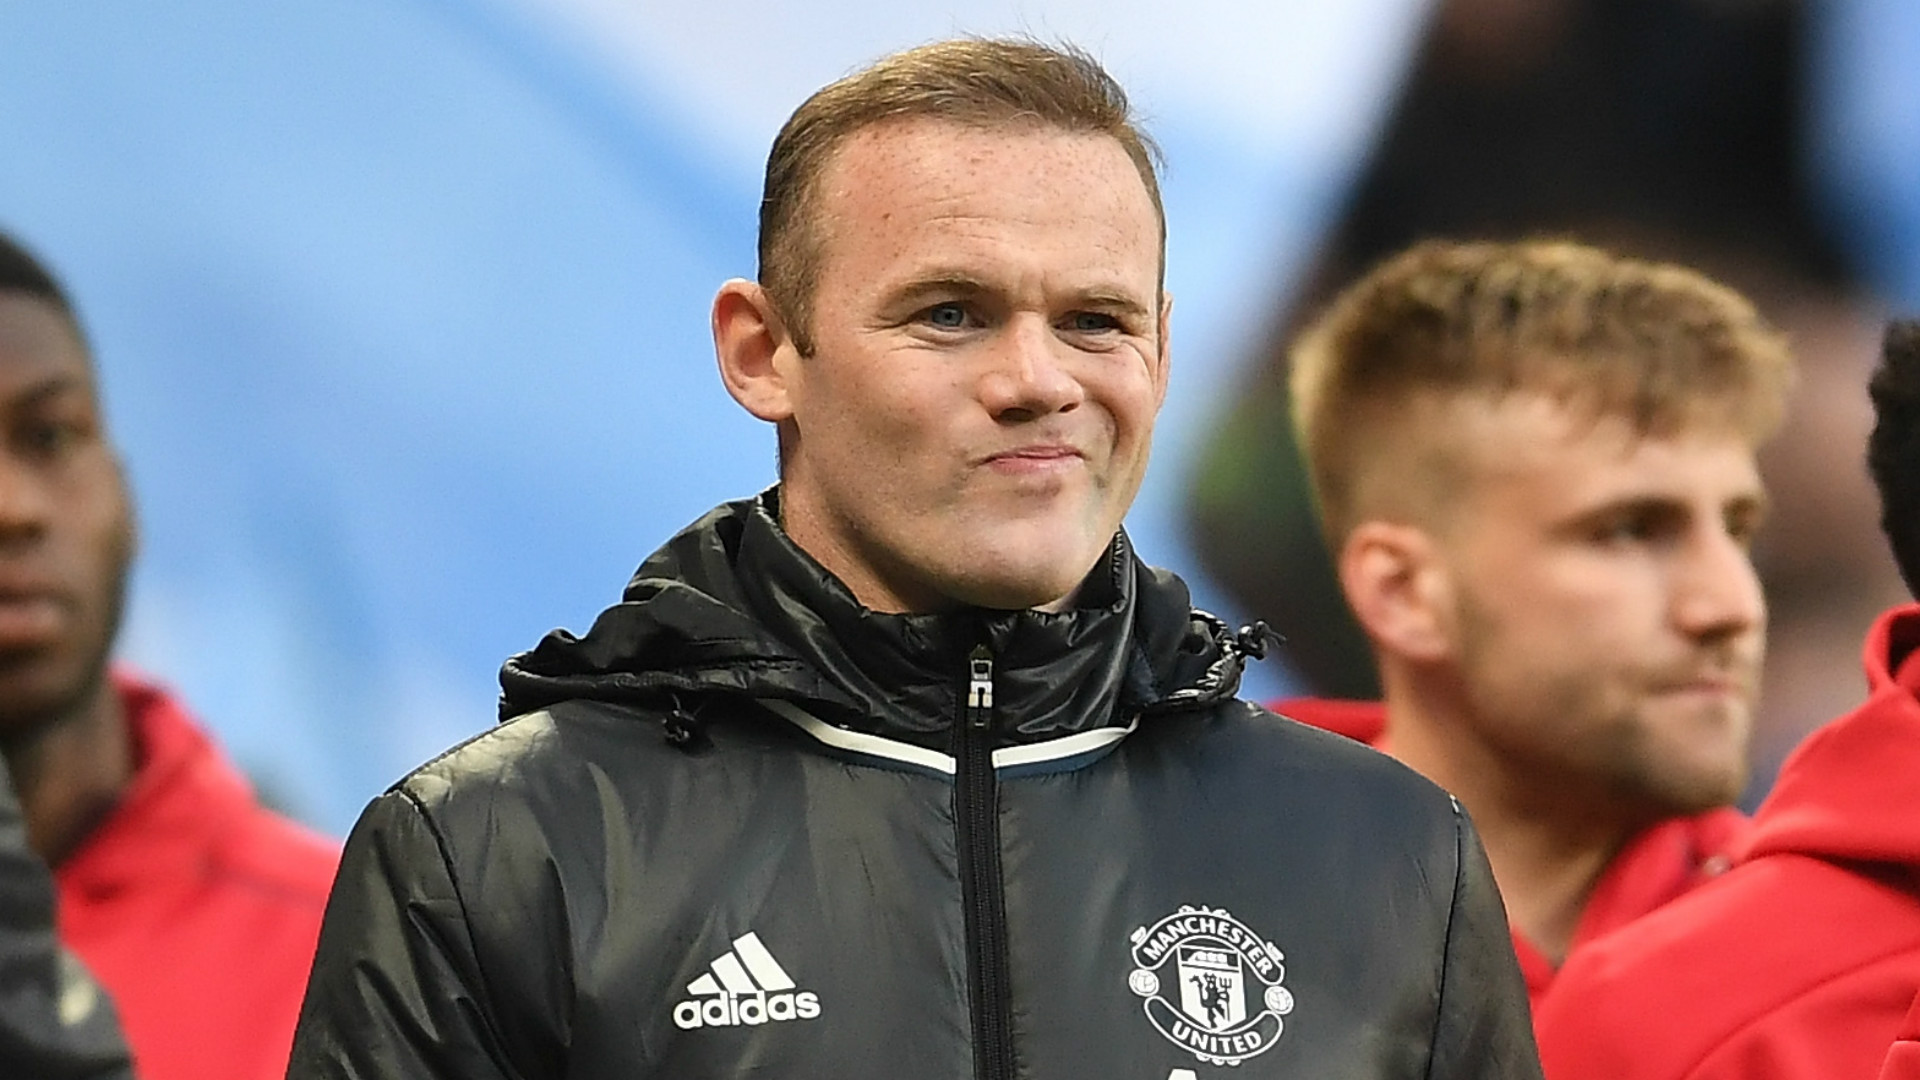 Neville Now Is The Time For Rooney To Leave Manchester